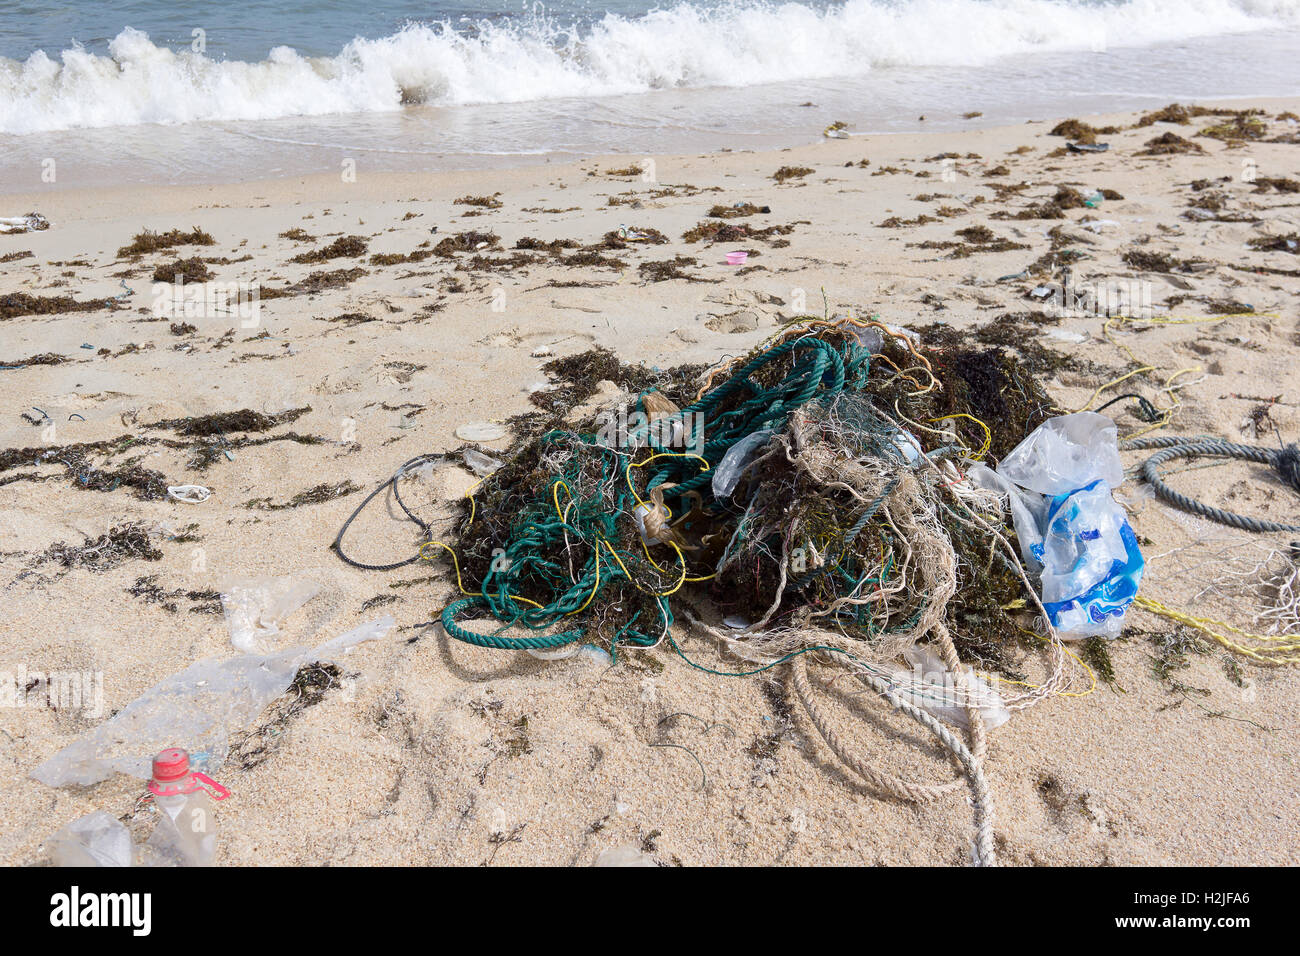 Plastic pollution from the sea on a beach - Stock Image